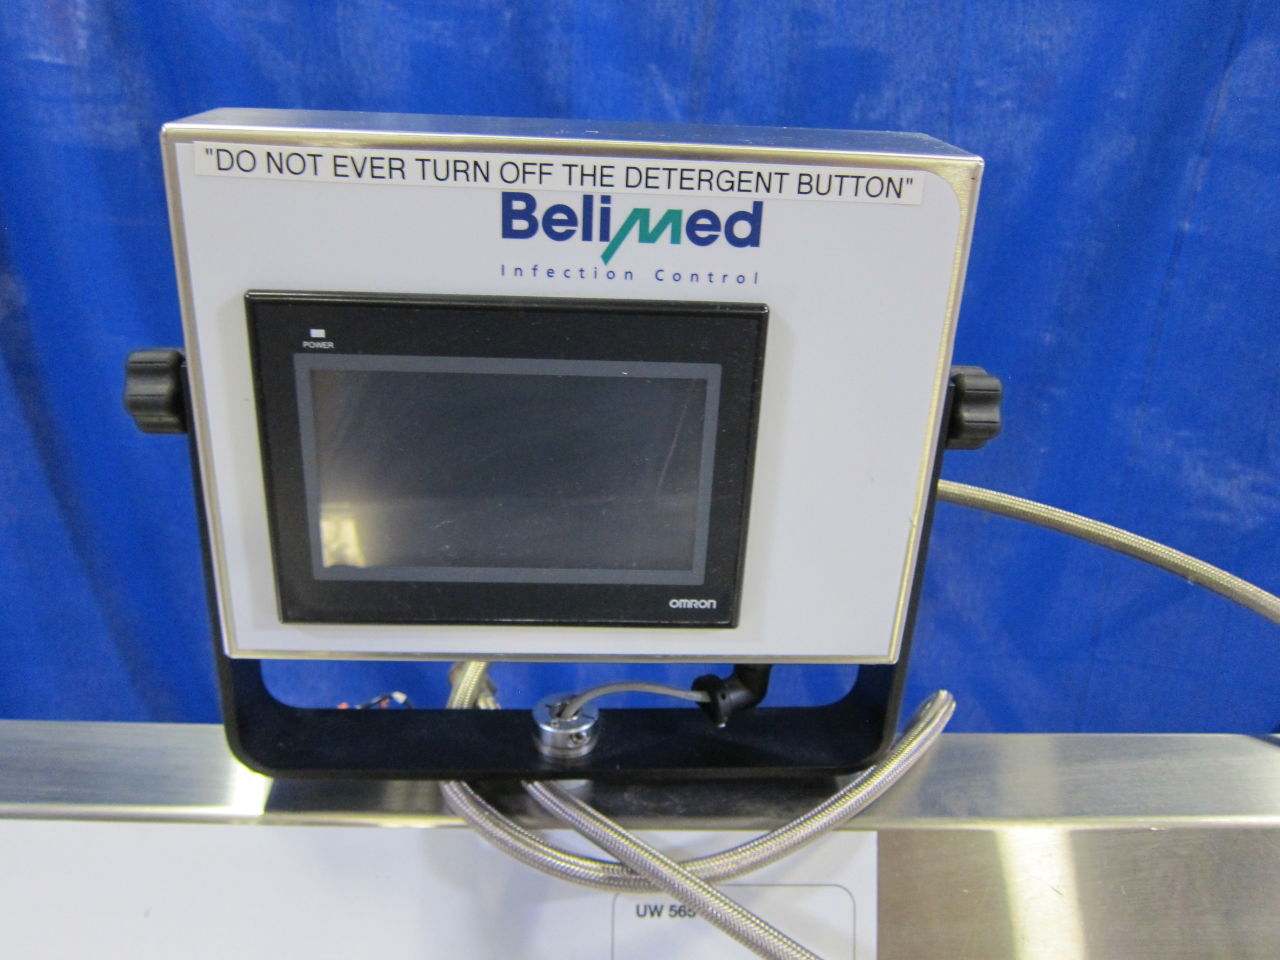 OMRON Belimed Ultrasonic Sterilizer